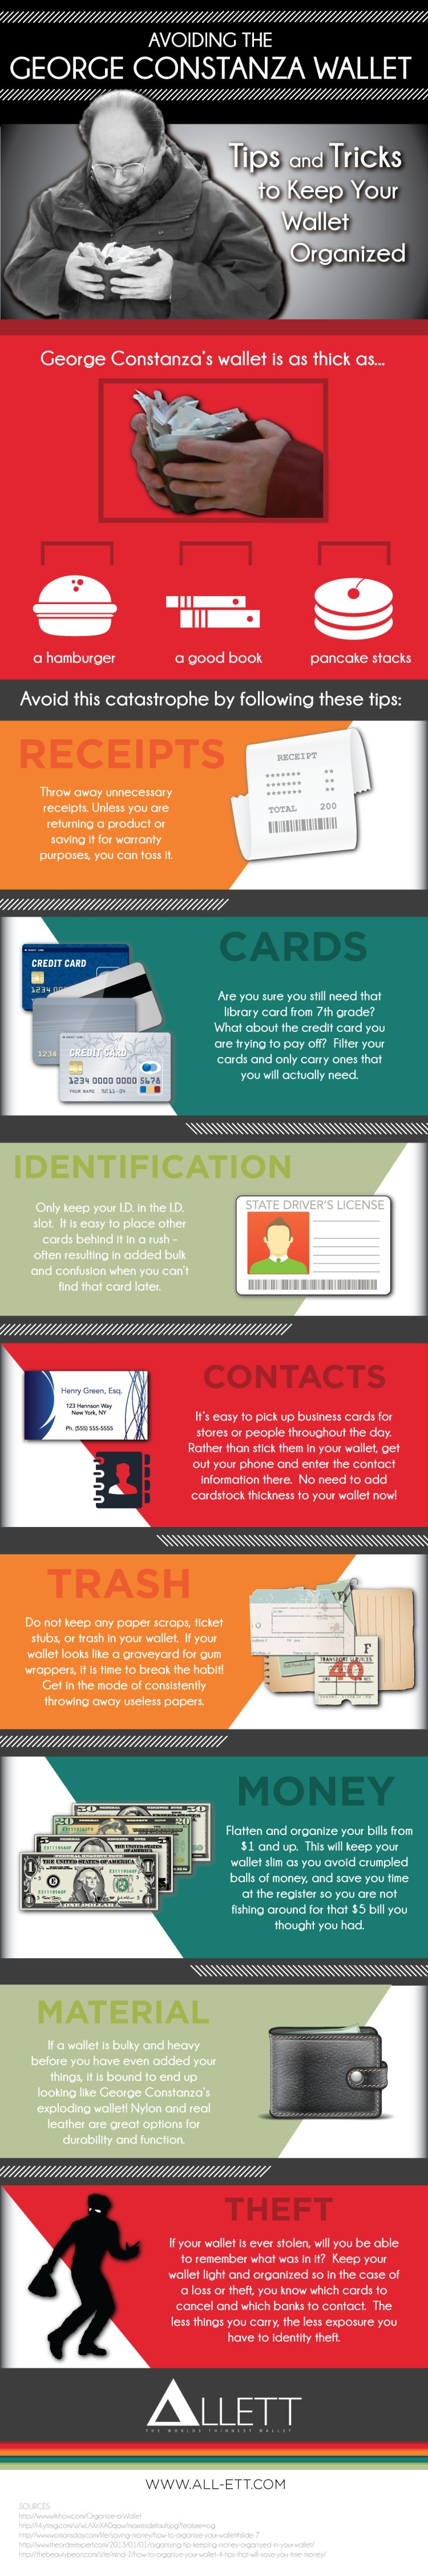 Avoiding the George Costanza Wallet Infographic